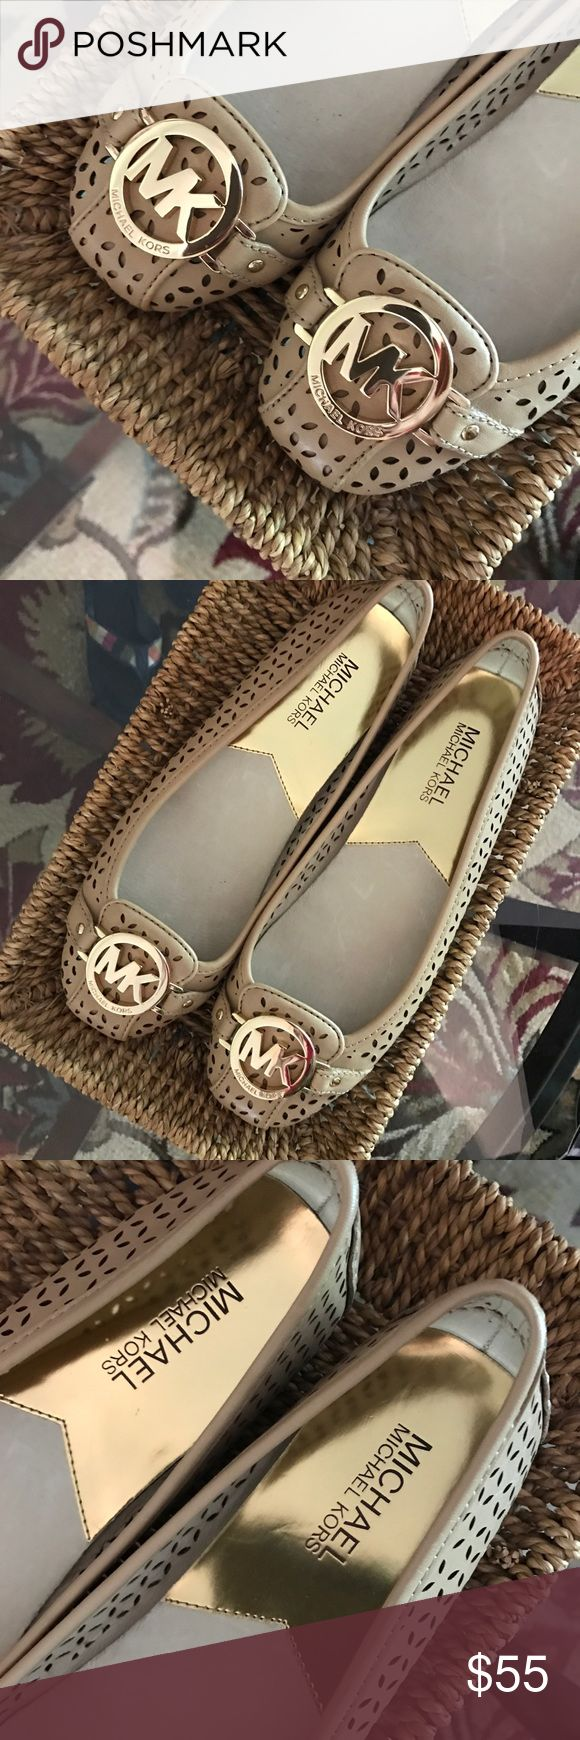 Michael Kors flats Nude color with gold accents MICHAEL Michael Kors Shoes